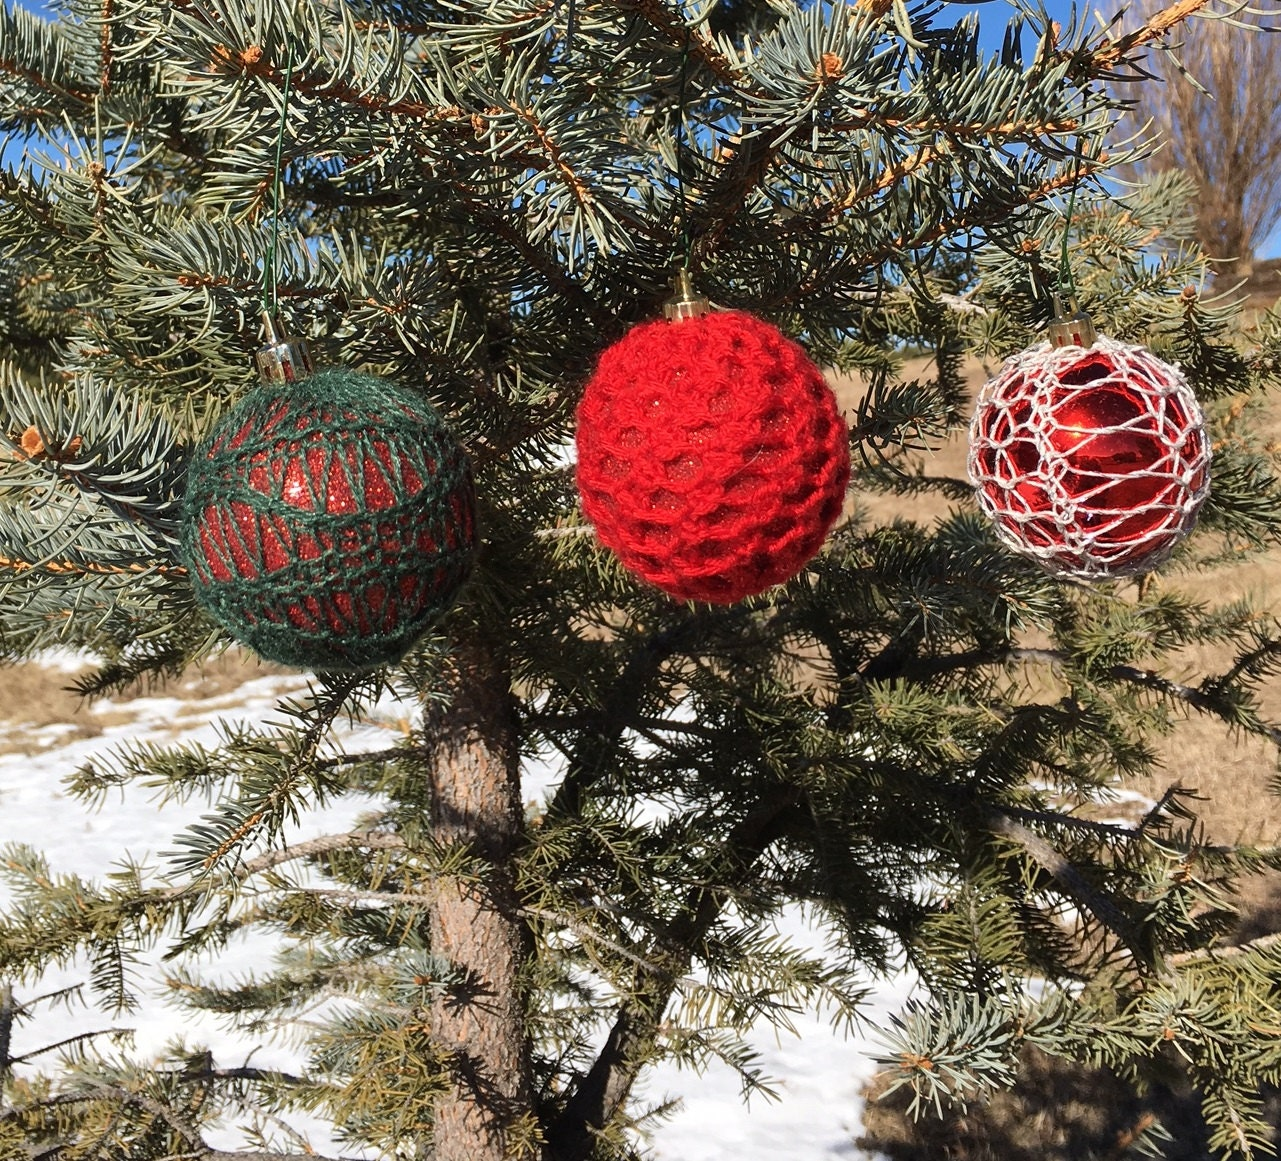 Loom Knit Christmas Ornaments Part - 38: Original Patterns For The Knitting Loom By DaynaScolesDesigns